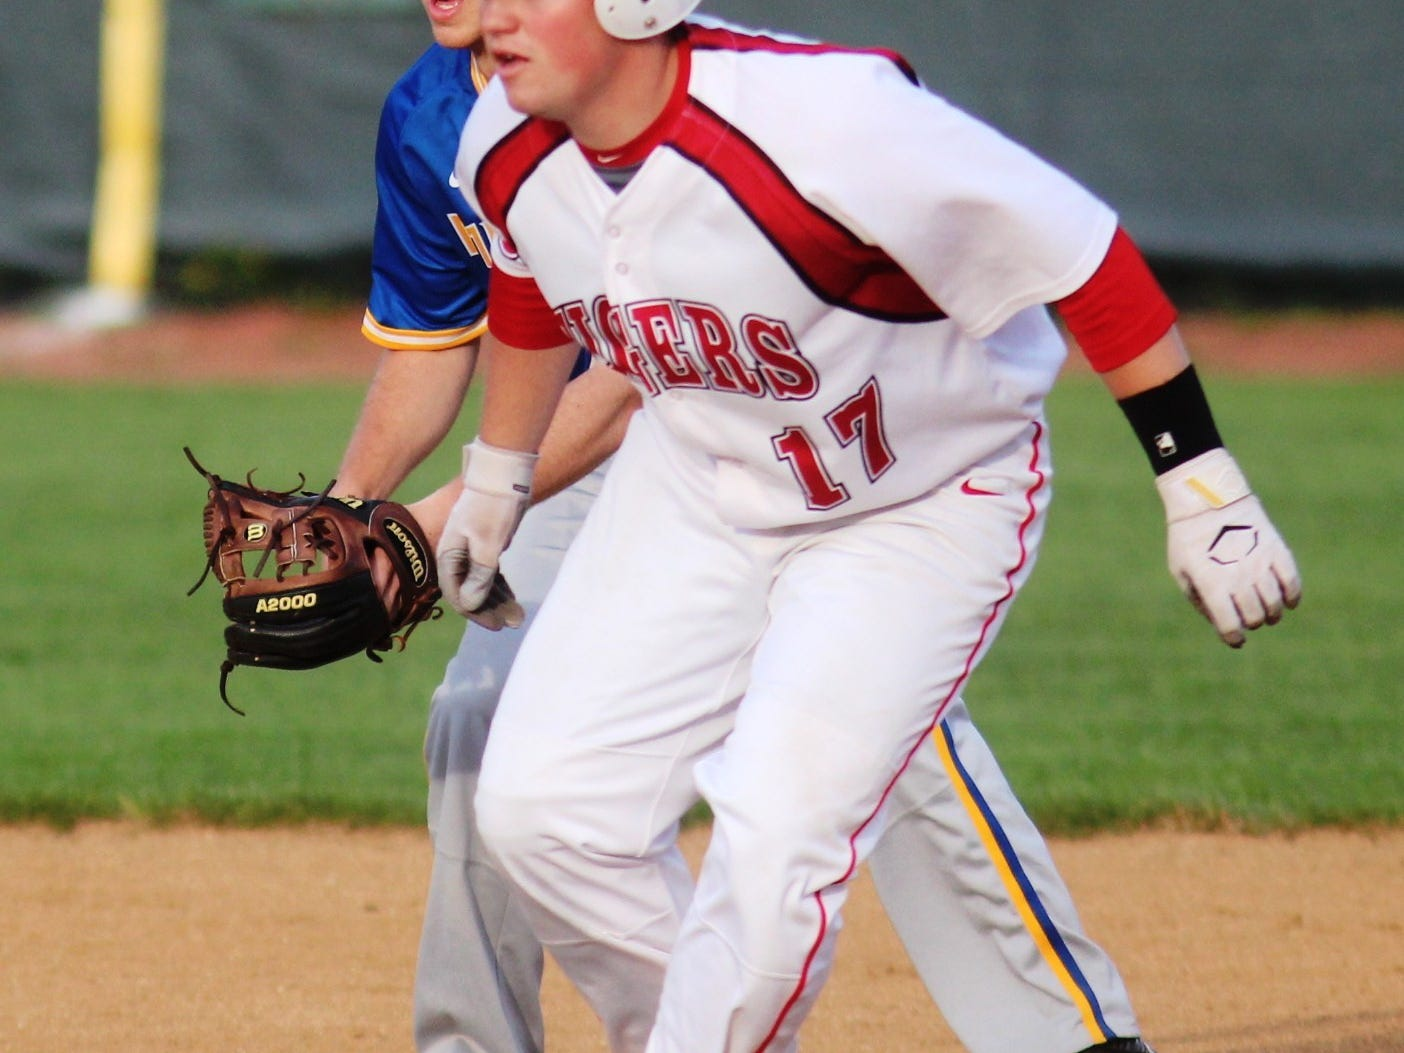 Beechwood senior Blake Hamilton gets to second in the April 17 Doc Morris Invitational game against Moeller